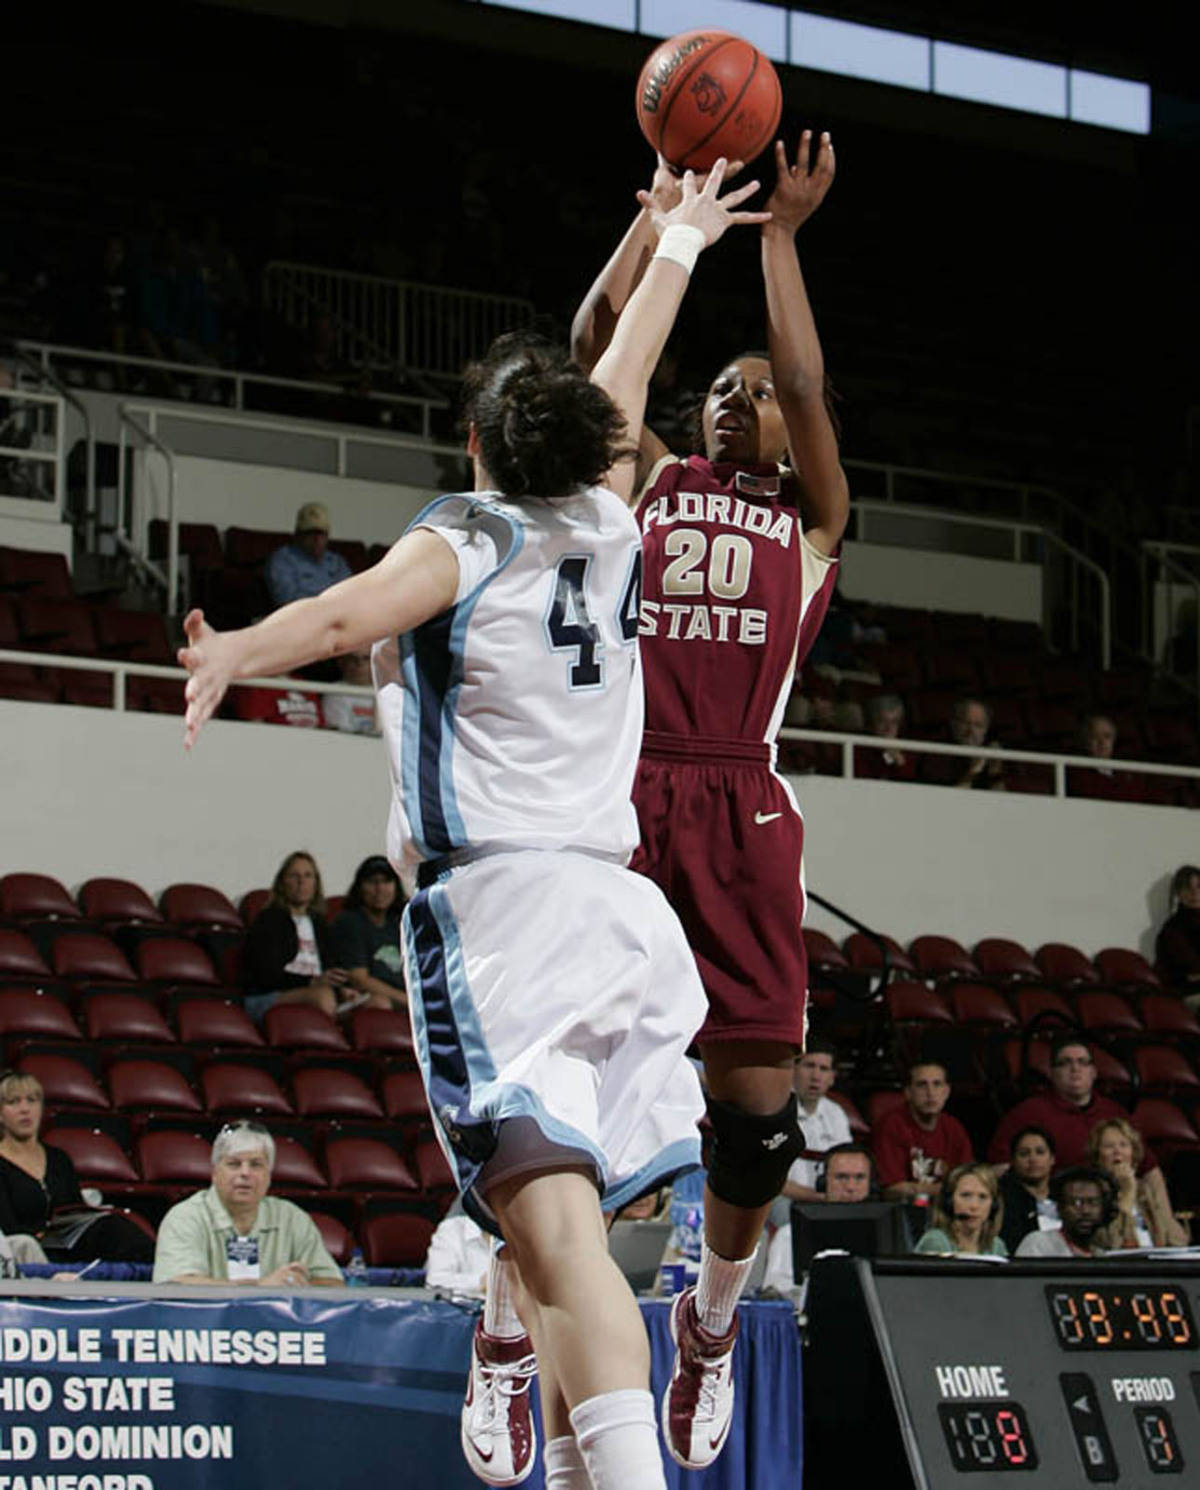 Tanae Davis-Cain made shots from all over the floor, including four three-pointers.